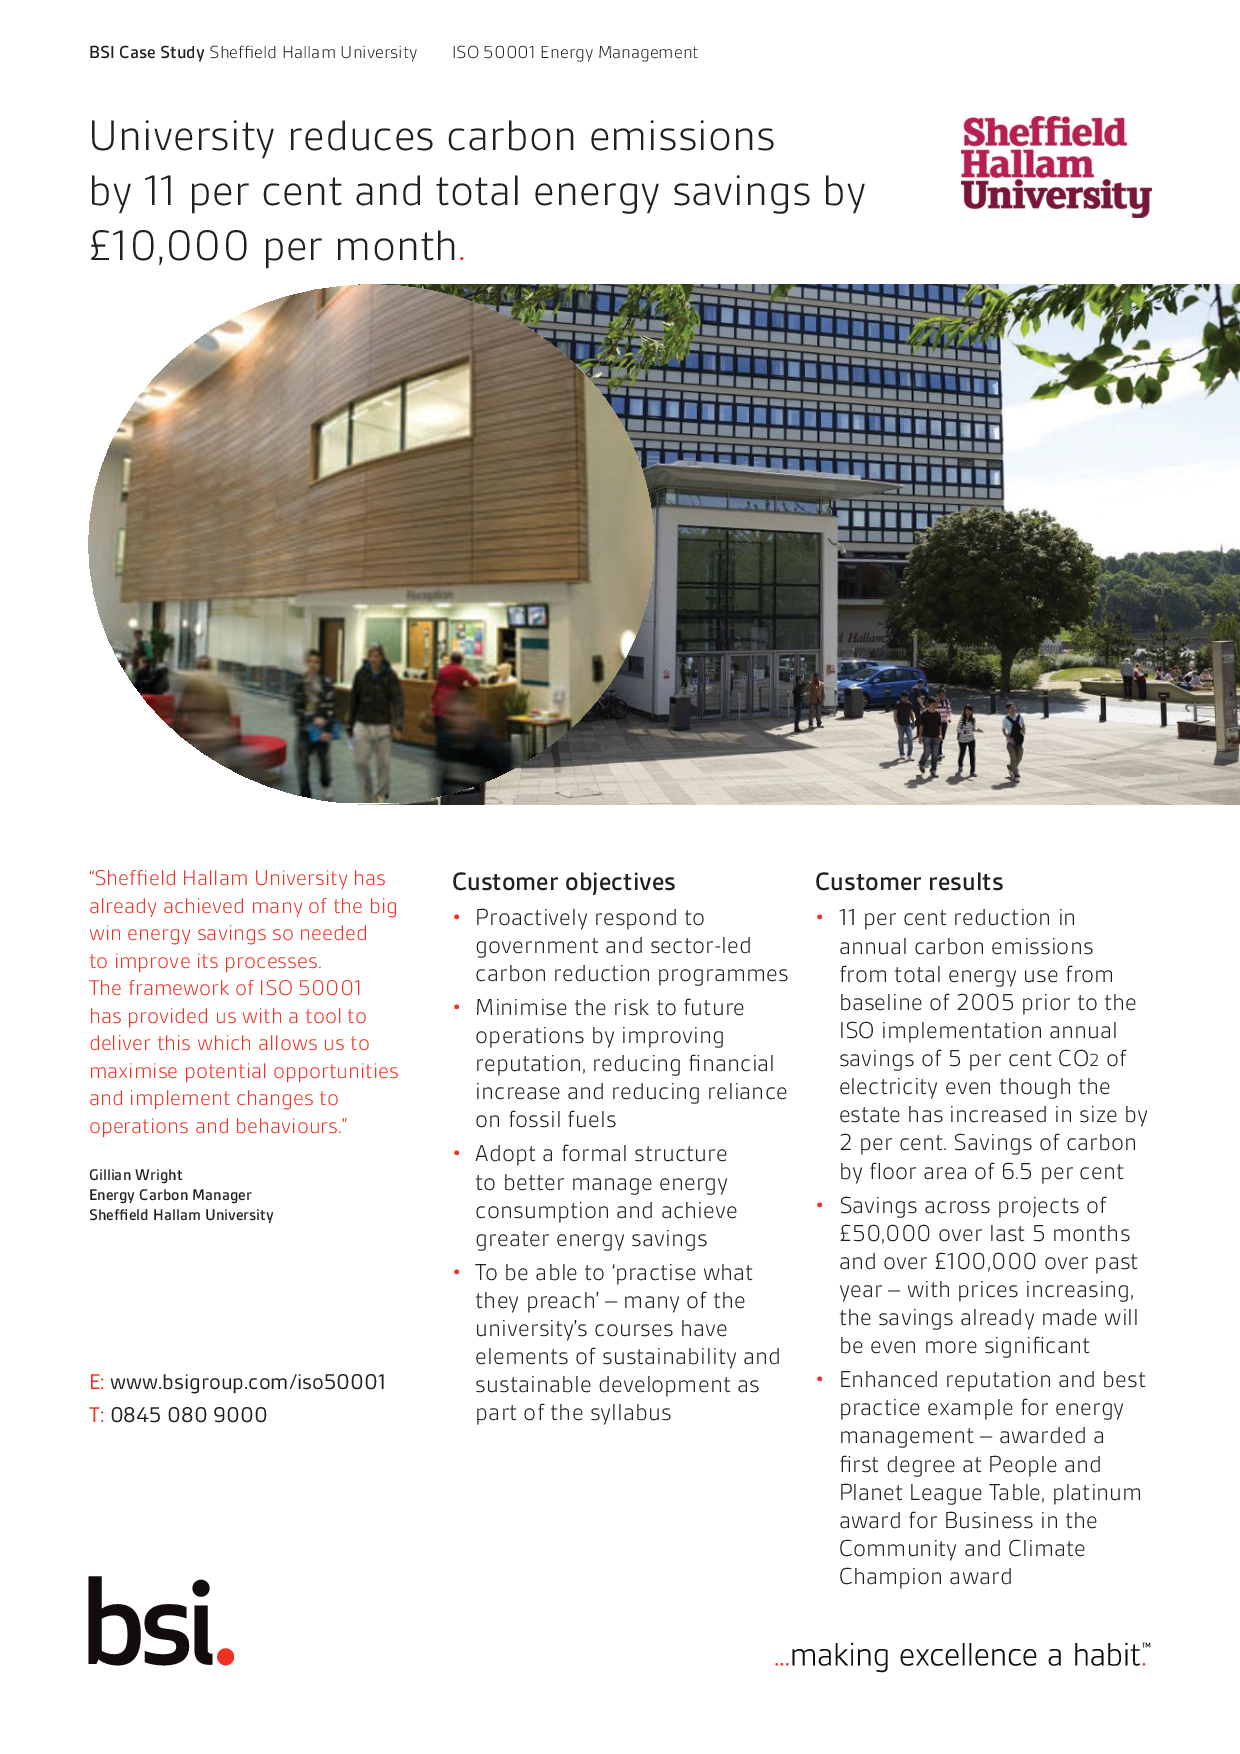 University reduces carbon emissions by 11 per cent and total energy savings by £10,000 per month.